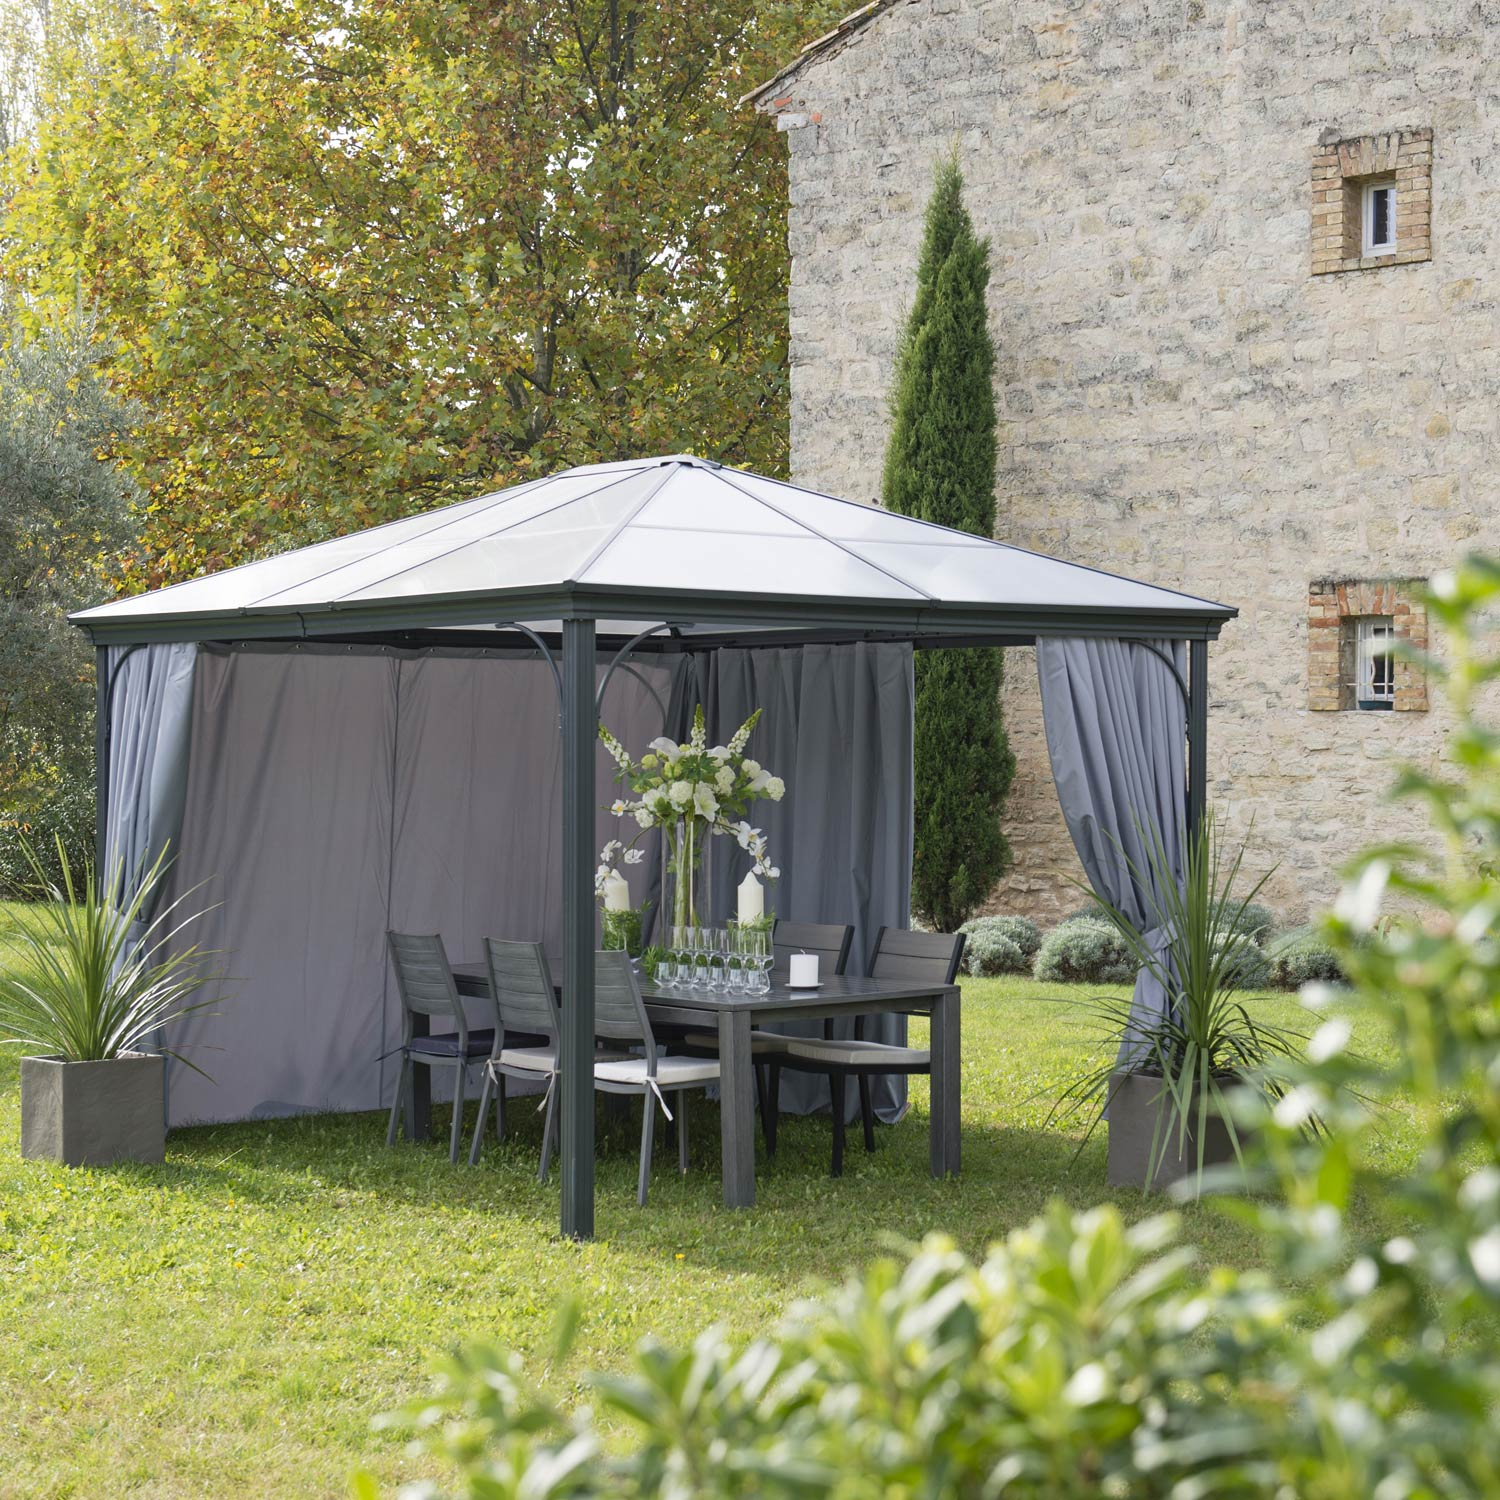 Table Jardin Octogonale Tonnelle Autoportante, Aluminium Gris Anthracite, 10.95 M²